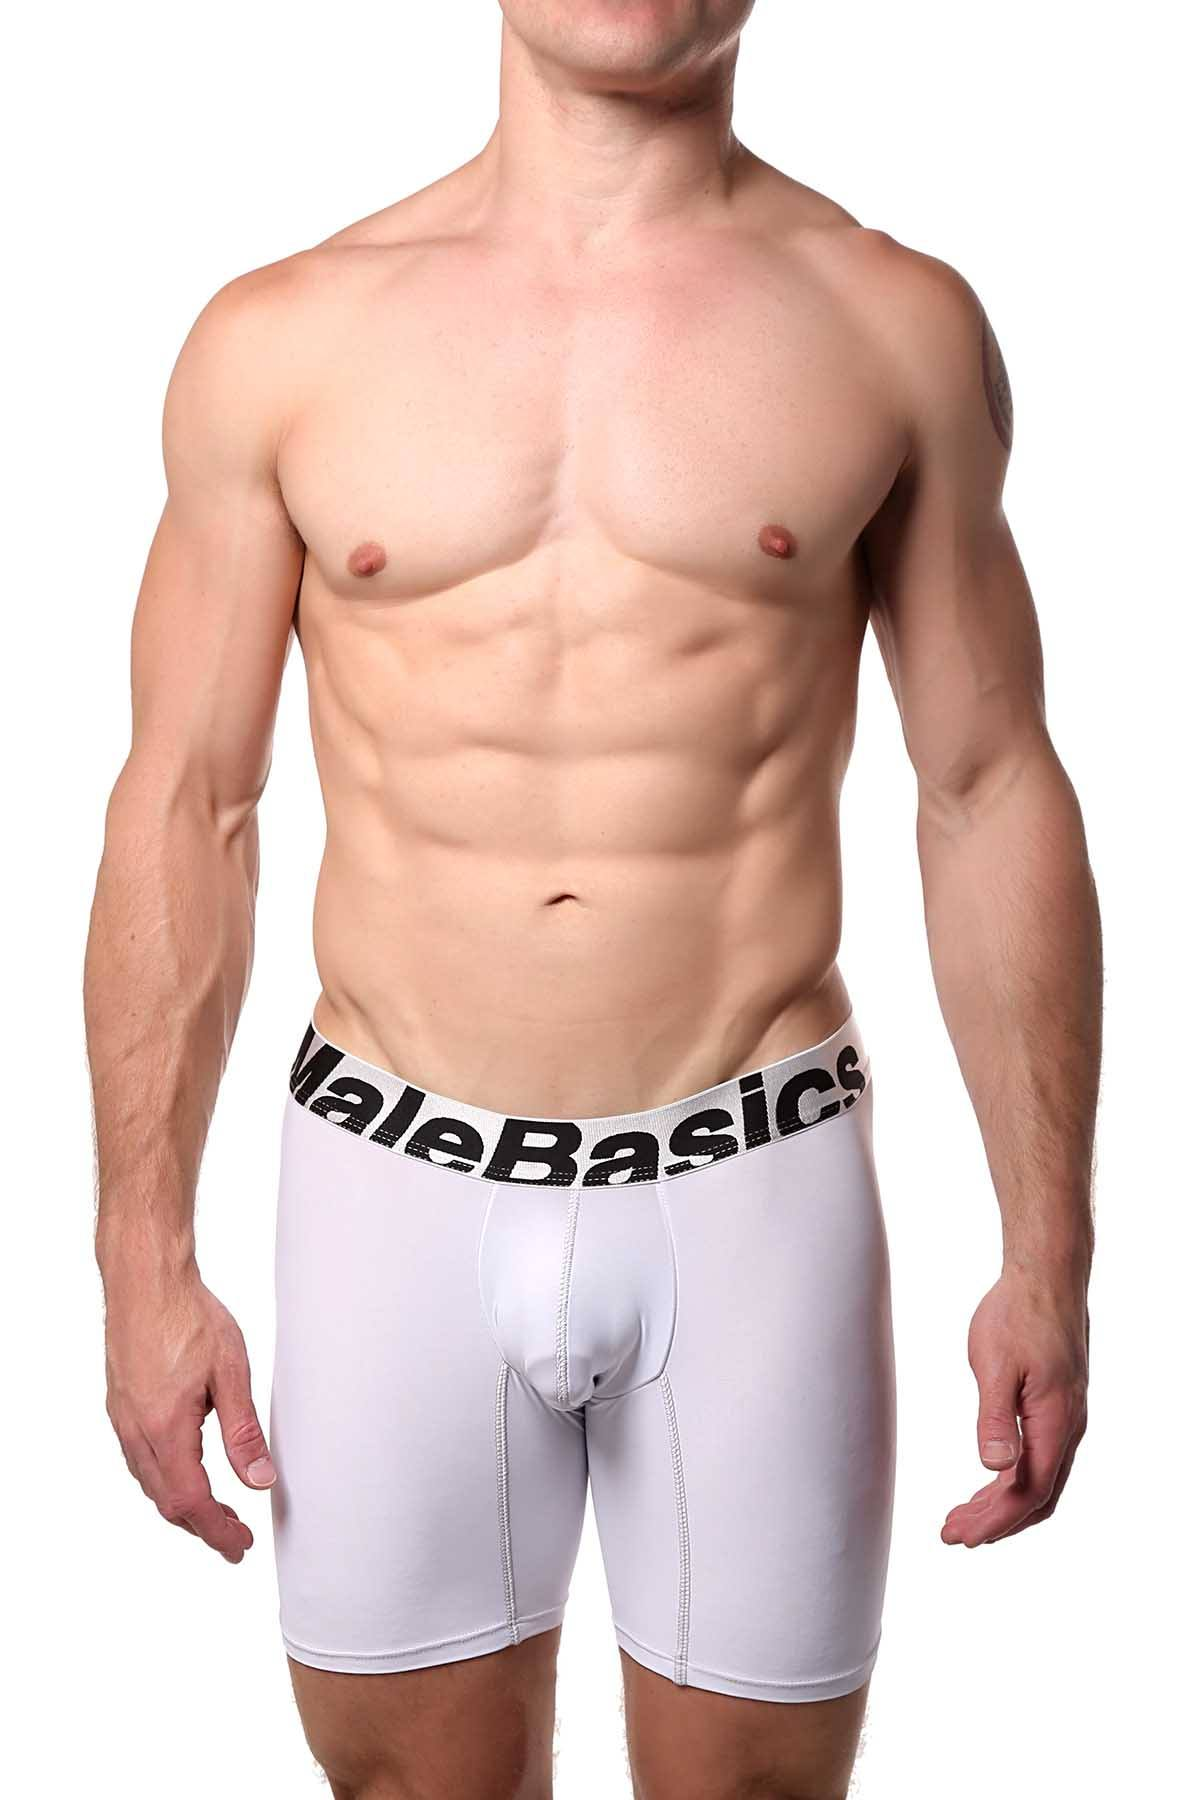 Male Basics White Microfiber Boxer Brief